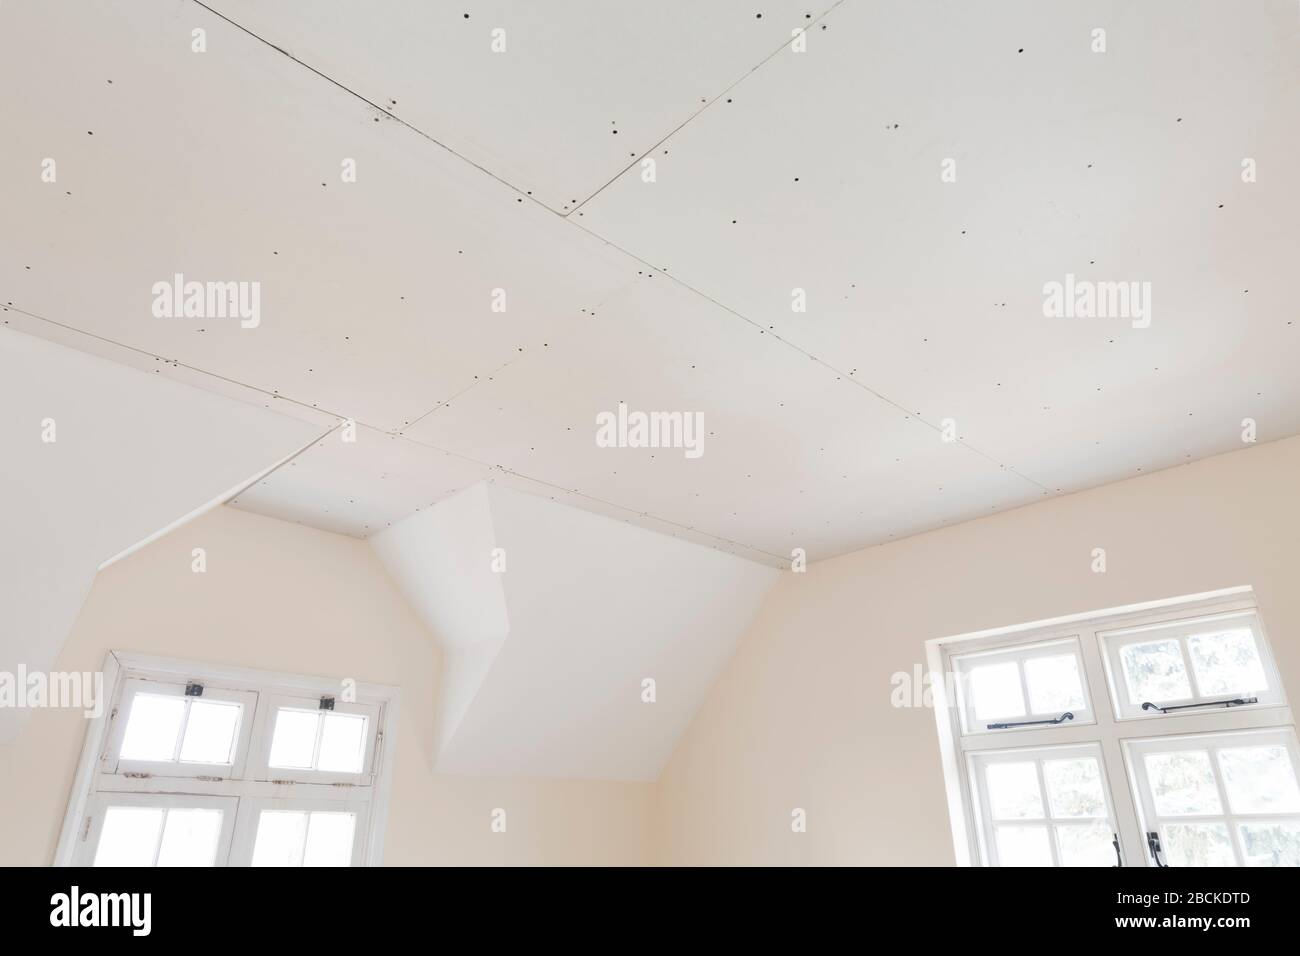 Gypsum Board Ceiling House Construction High Resolution Stock Photography And Images Alamy